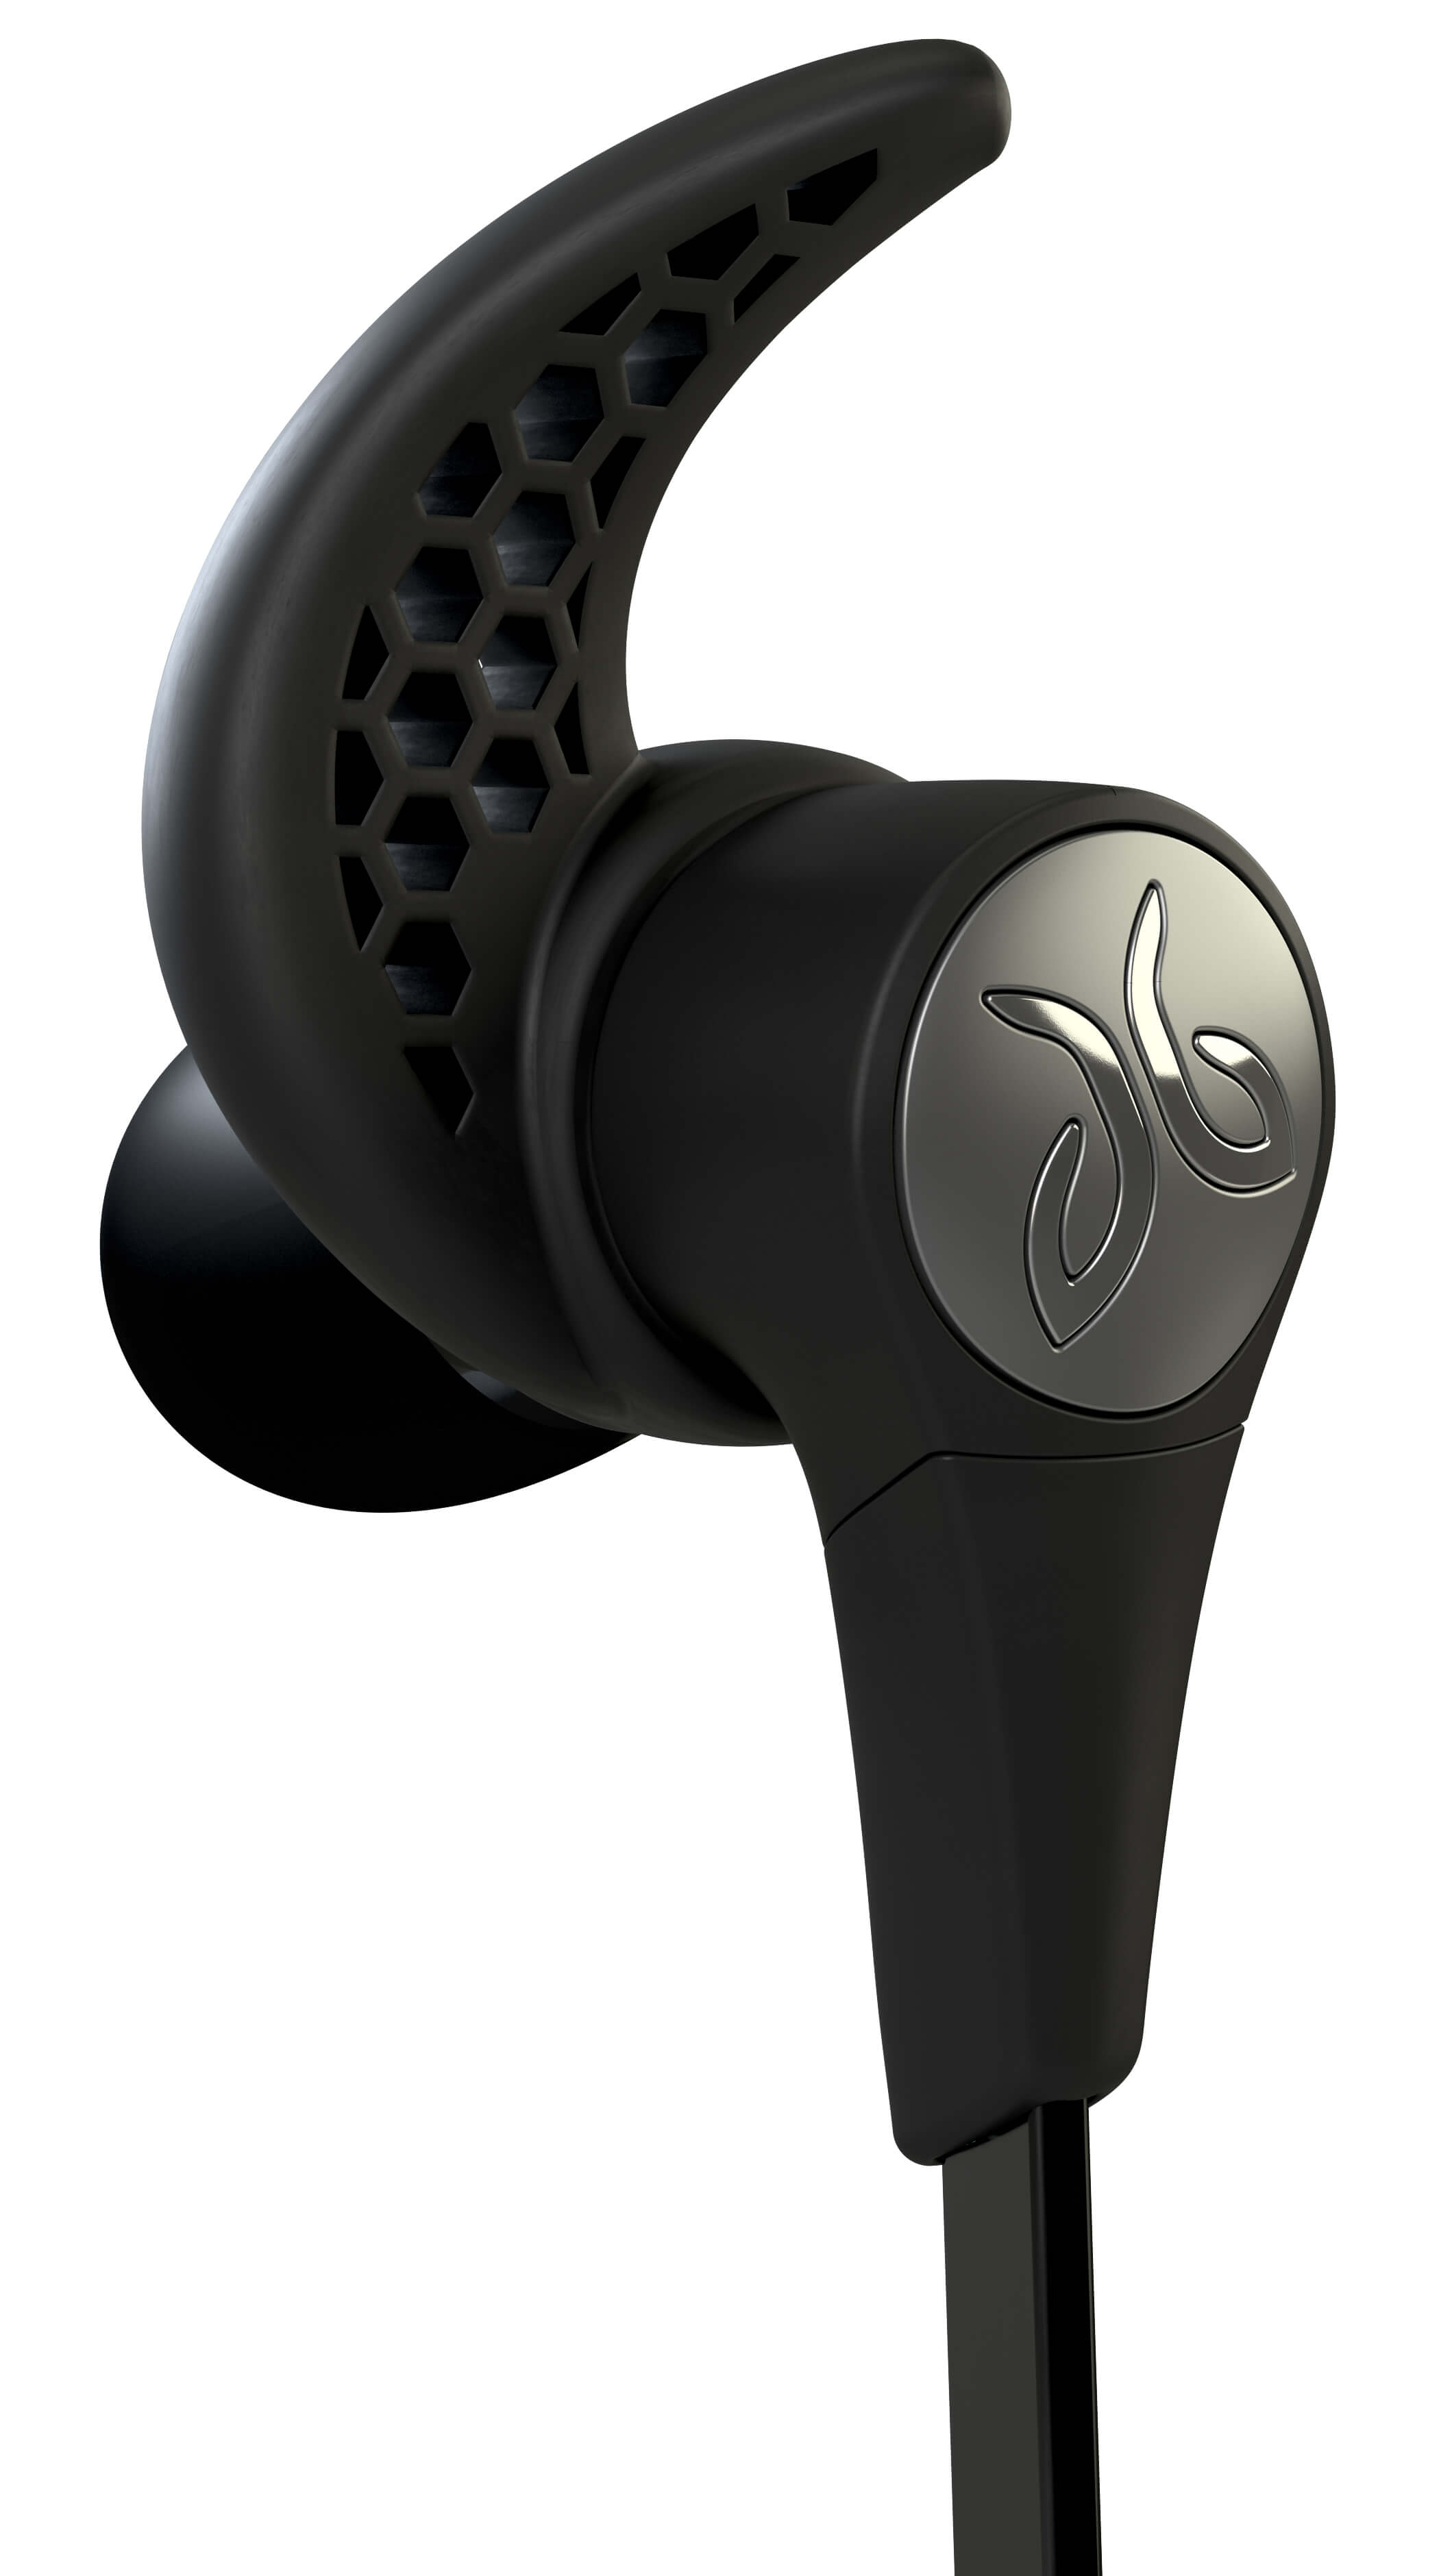 Blackout Jaybird X3 Sport Headphones Ear Piece Close-Up